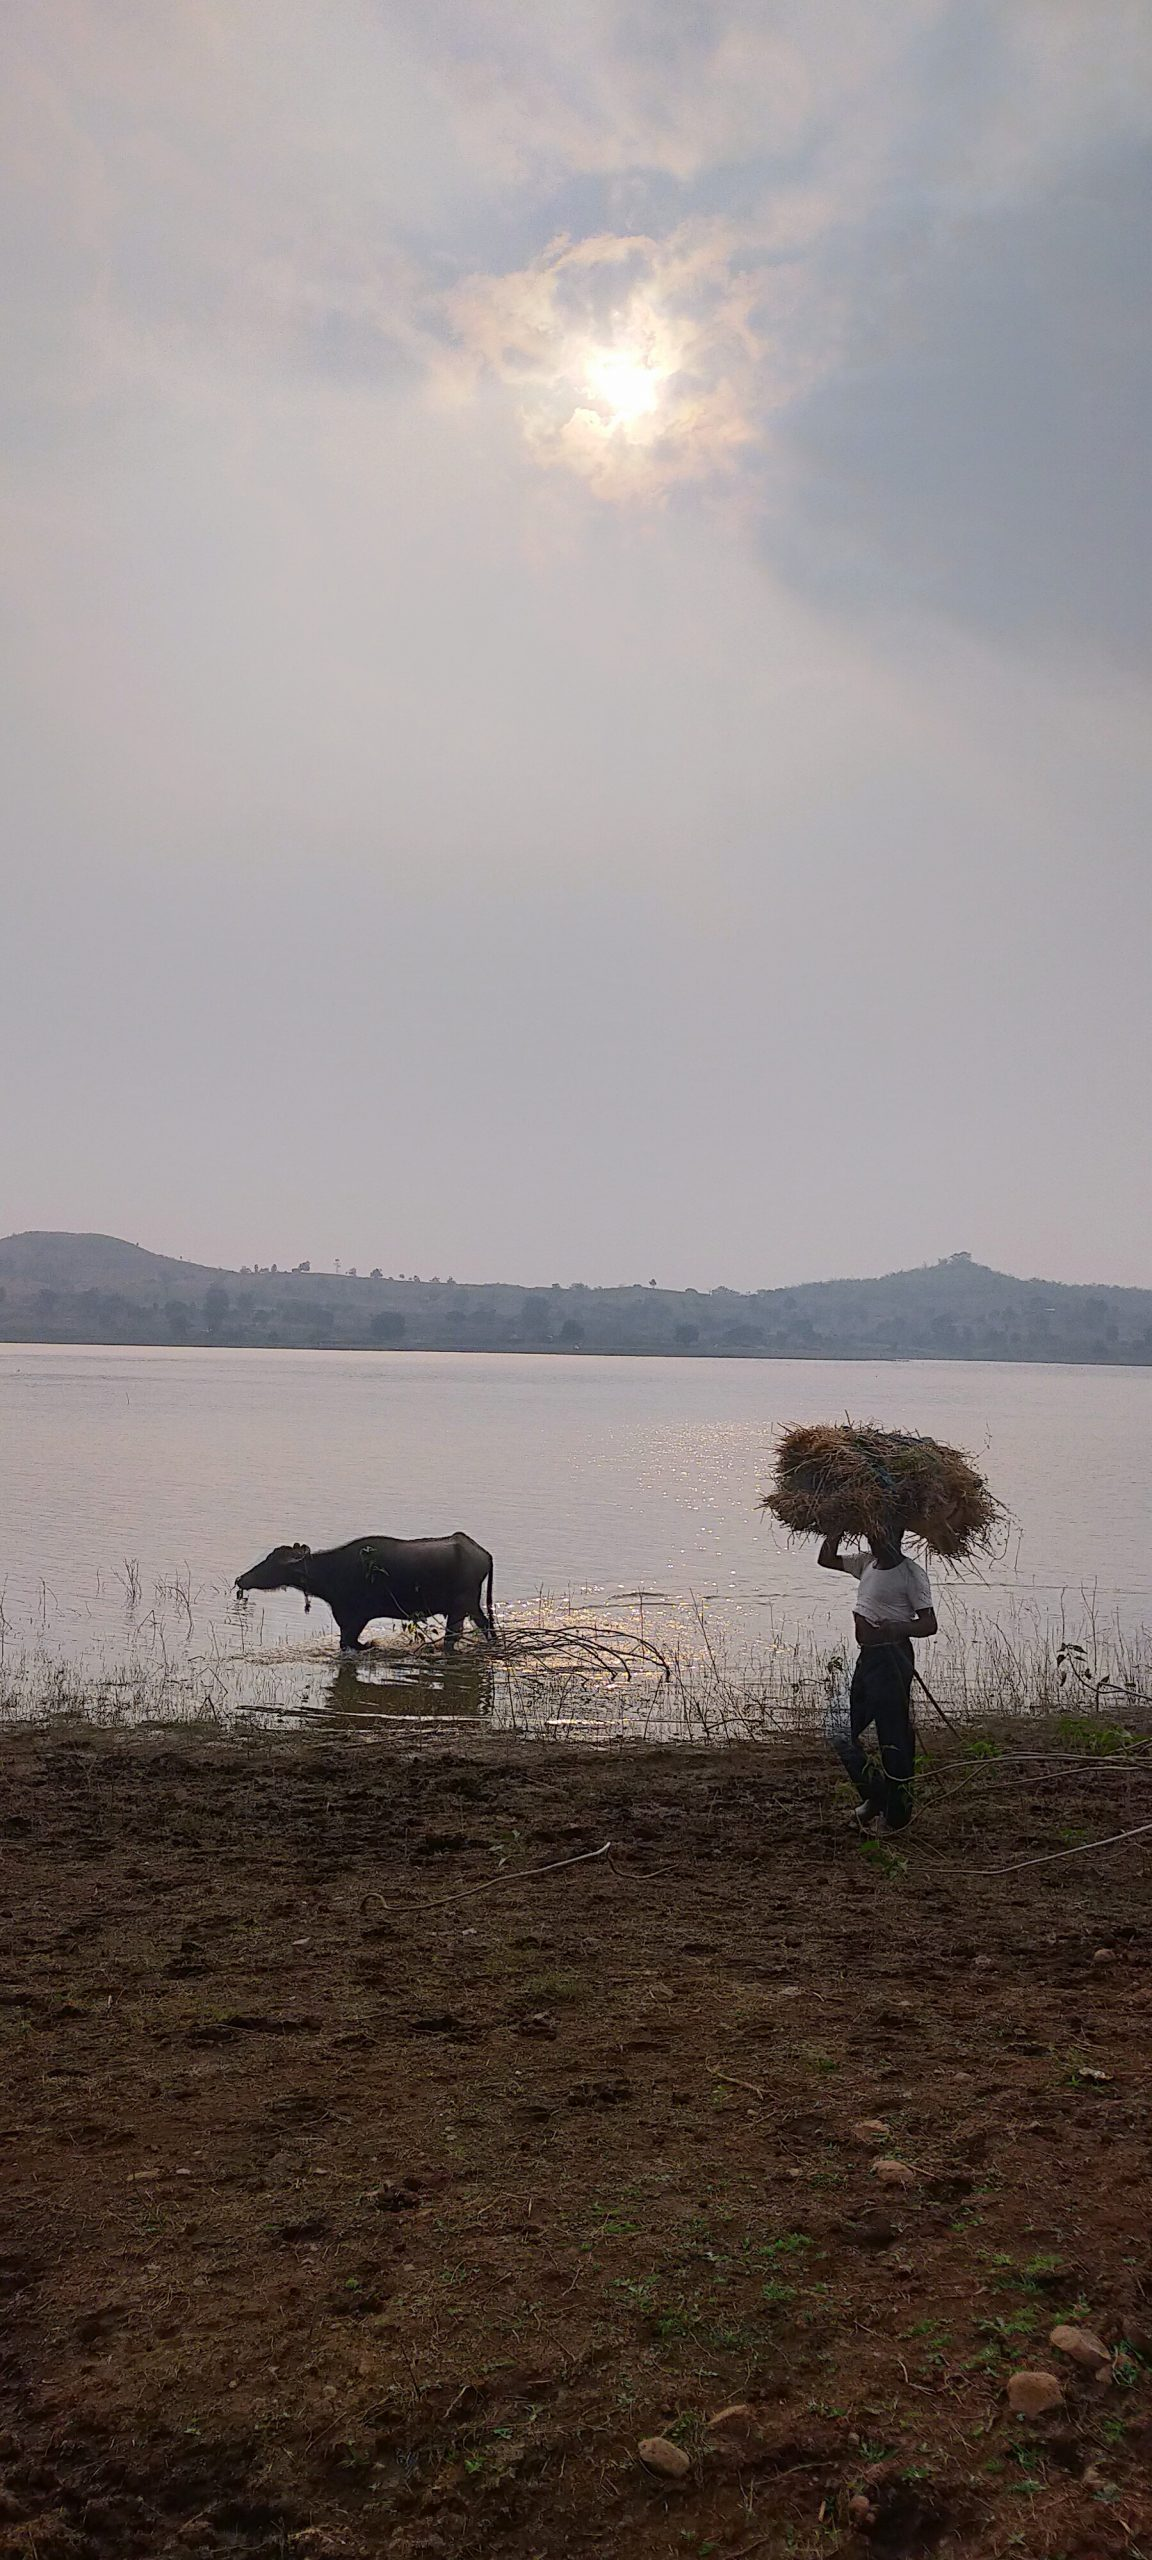 A farmer with his buffalo at beachside